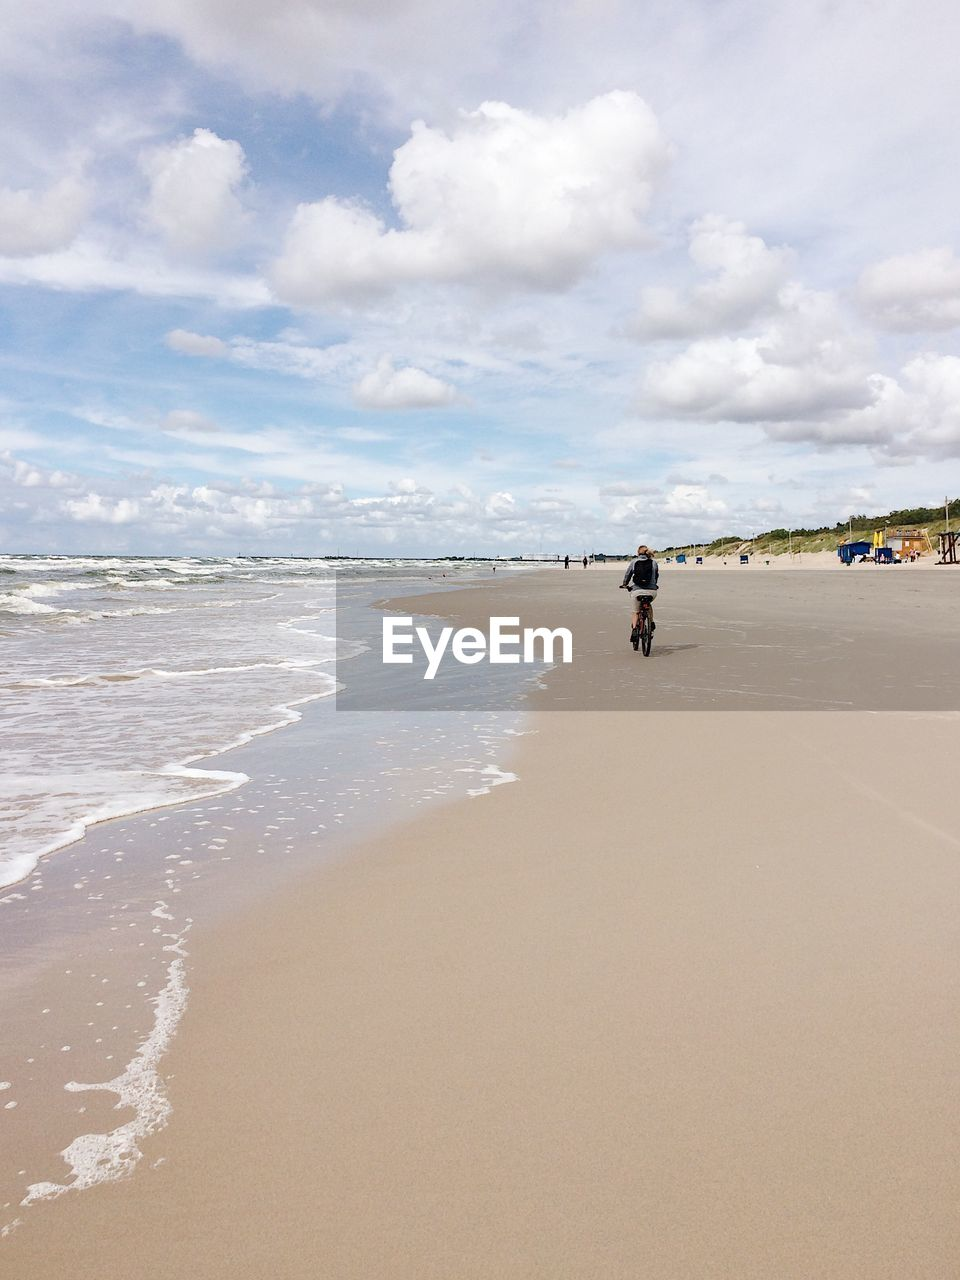 beach, land, sea, sky, water, cloud - sky, sand, beauty in nature, scenics - nature, nature, day, incidental people, wave, horizon, real people, motion, tranquility, non-urban scene, people, outdoors, horizon over water